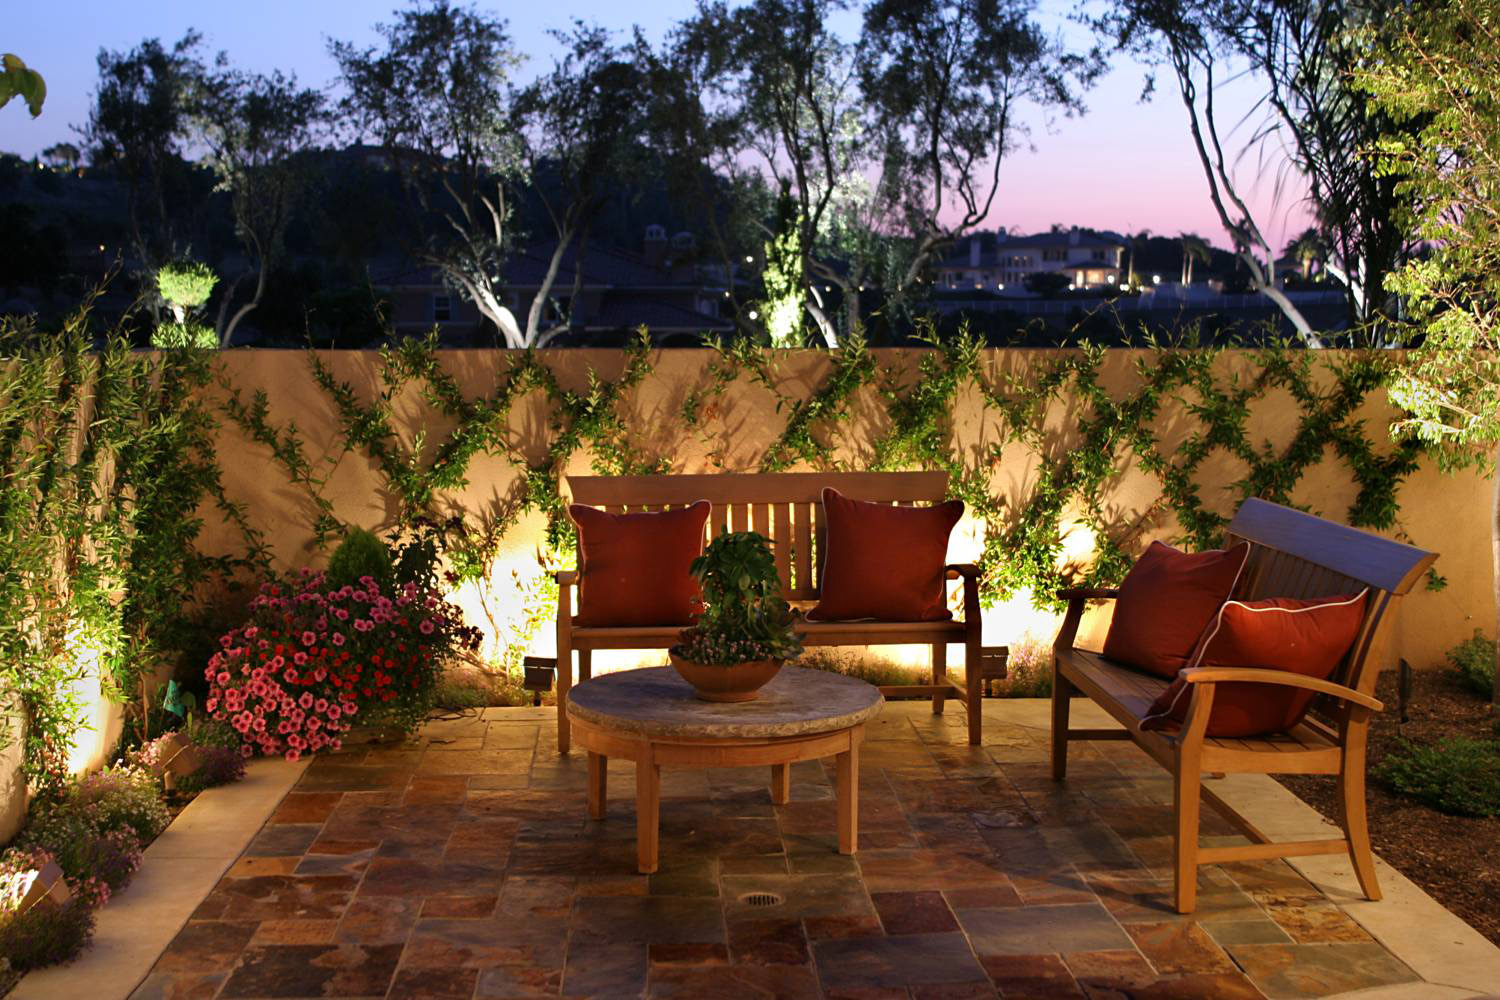 "<a href=""http://bluelinelandscape.com/gallery-lighting/"">Landscape Lighting</a>"